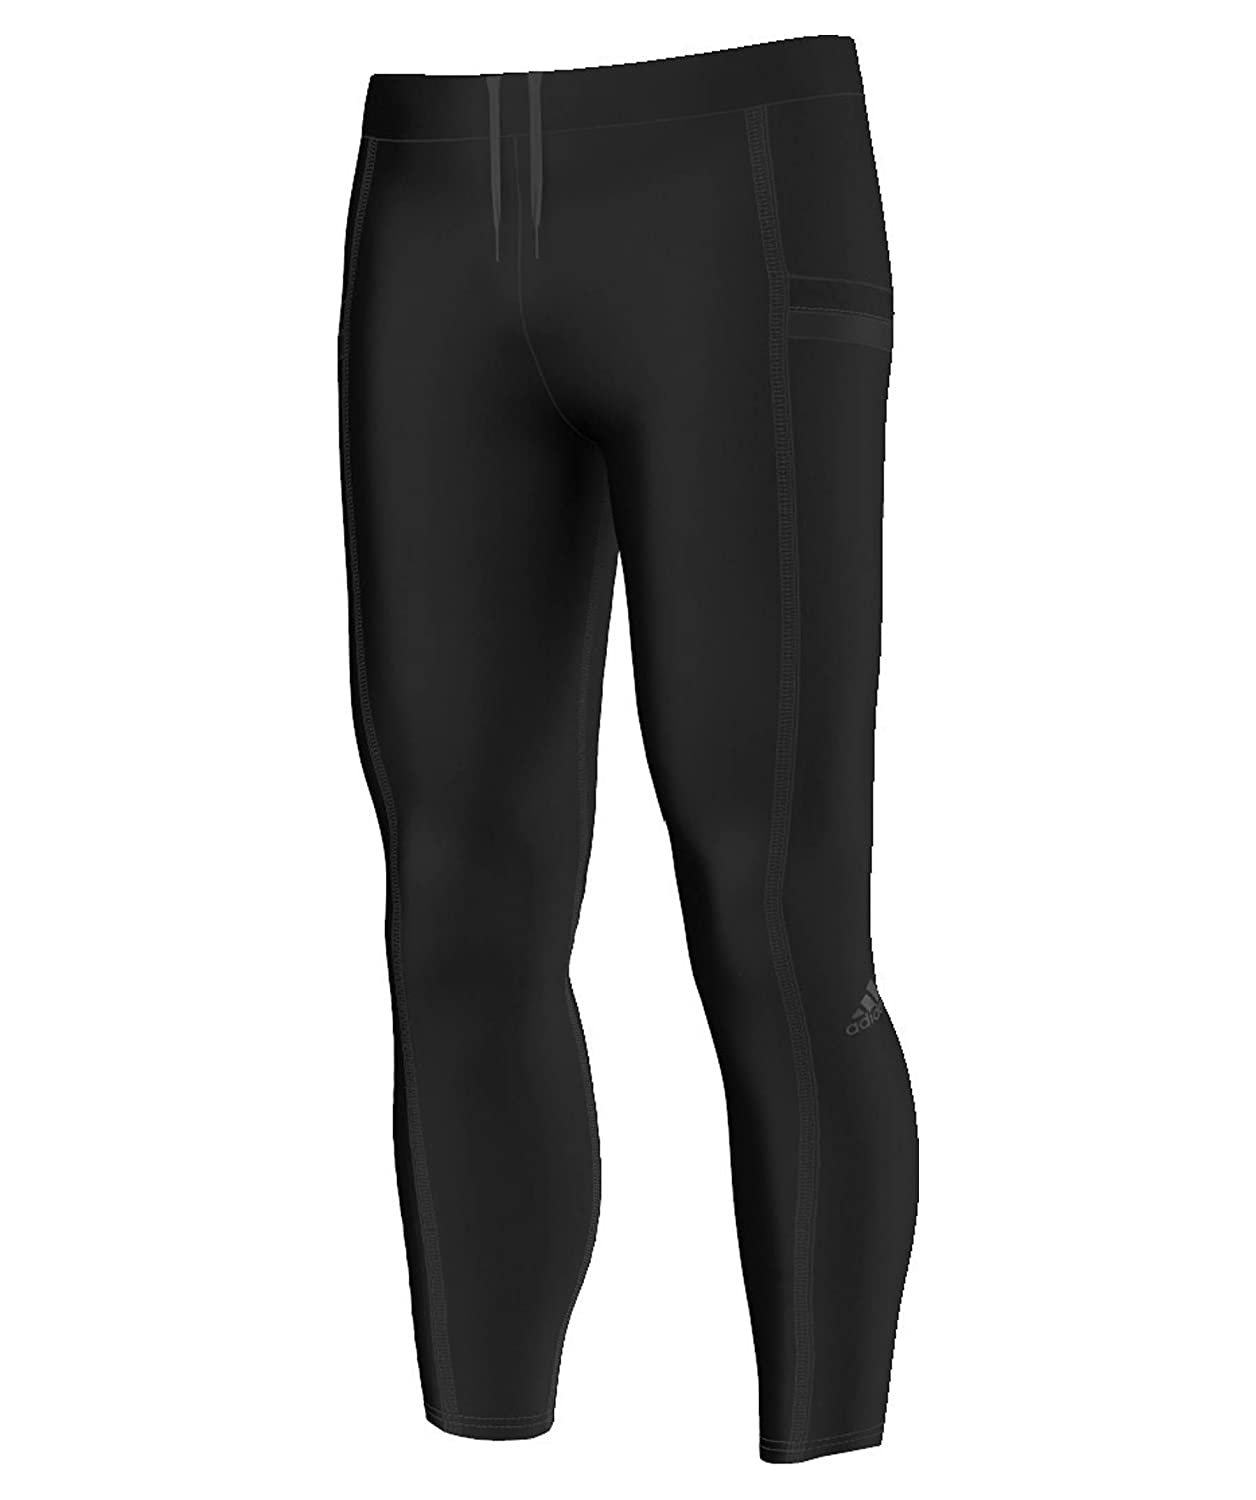 adidas Oberbekleidung Adistar Long Tights S90947390